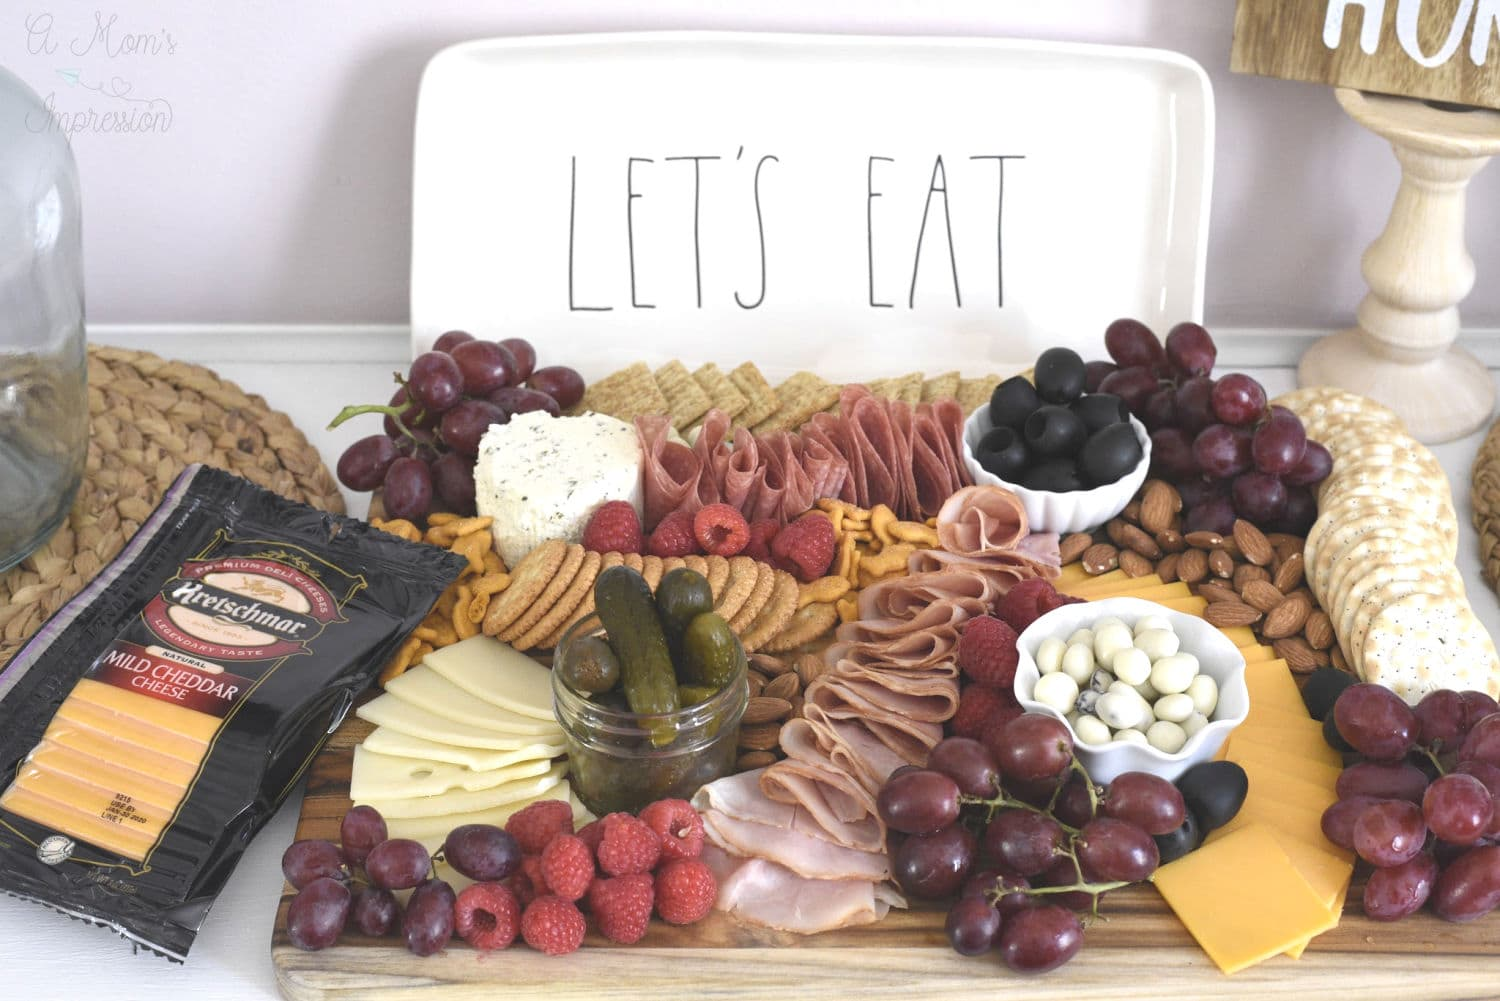 A display charcuterie board on a table with cheese